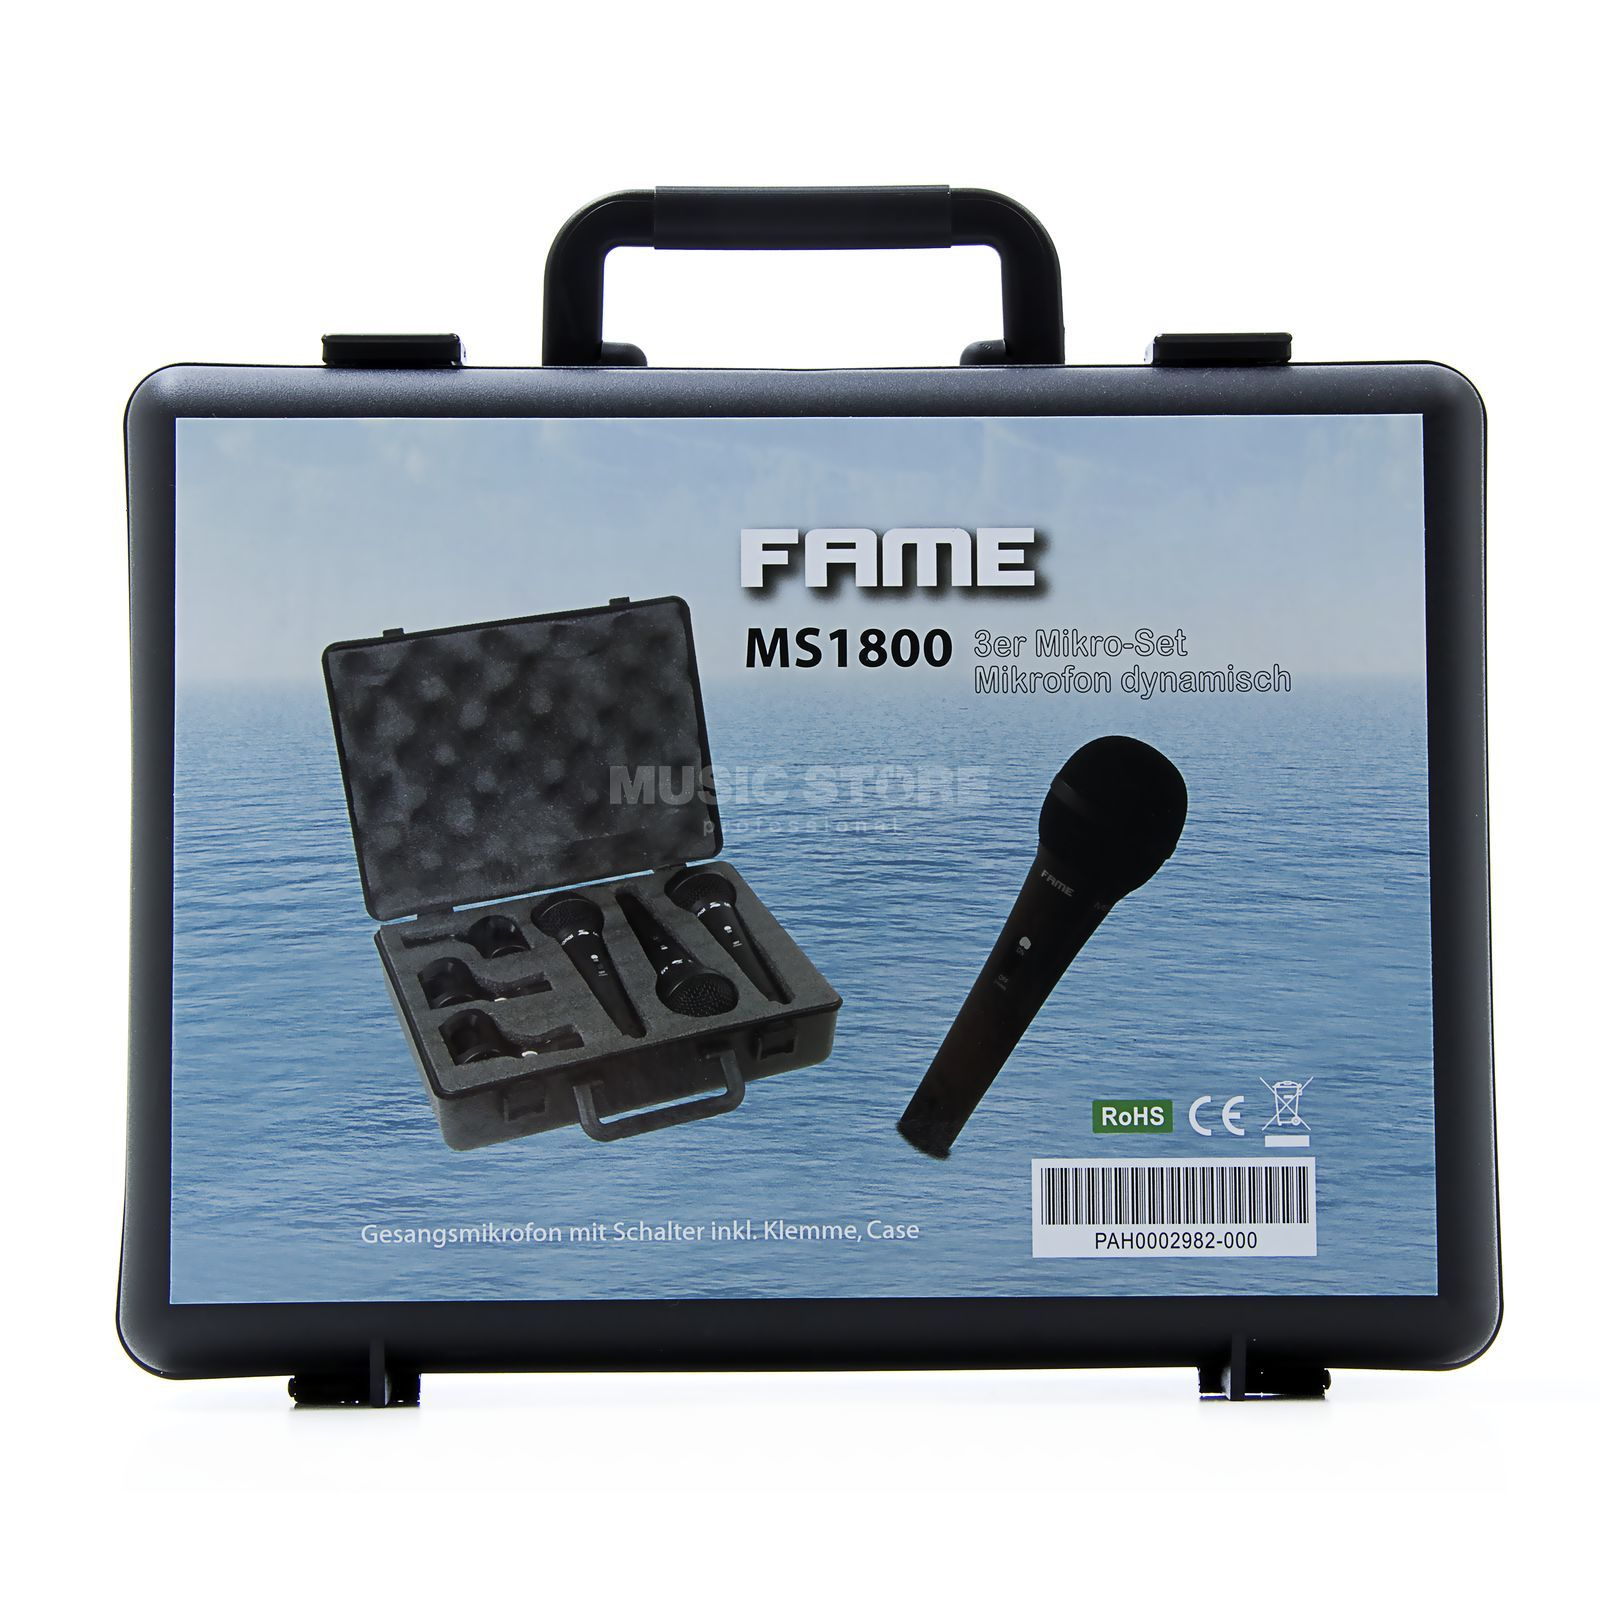 Fame audio MS 1800 S 3er Micro-Set dynamic Microphone, switch Produktbillede